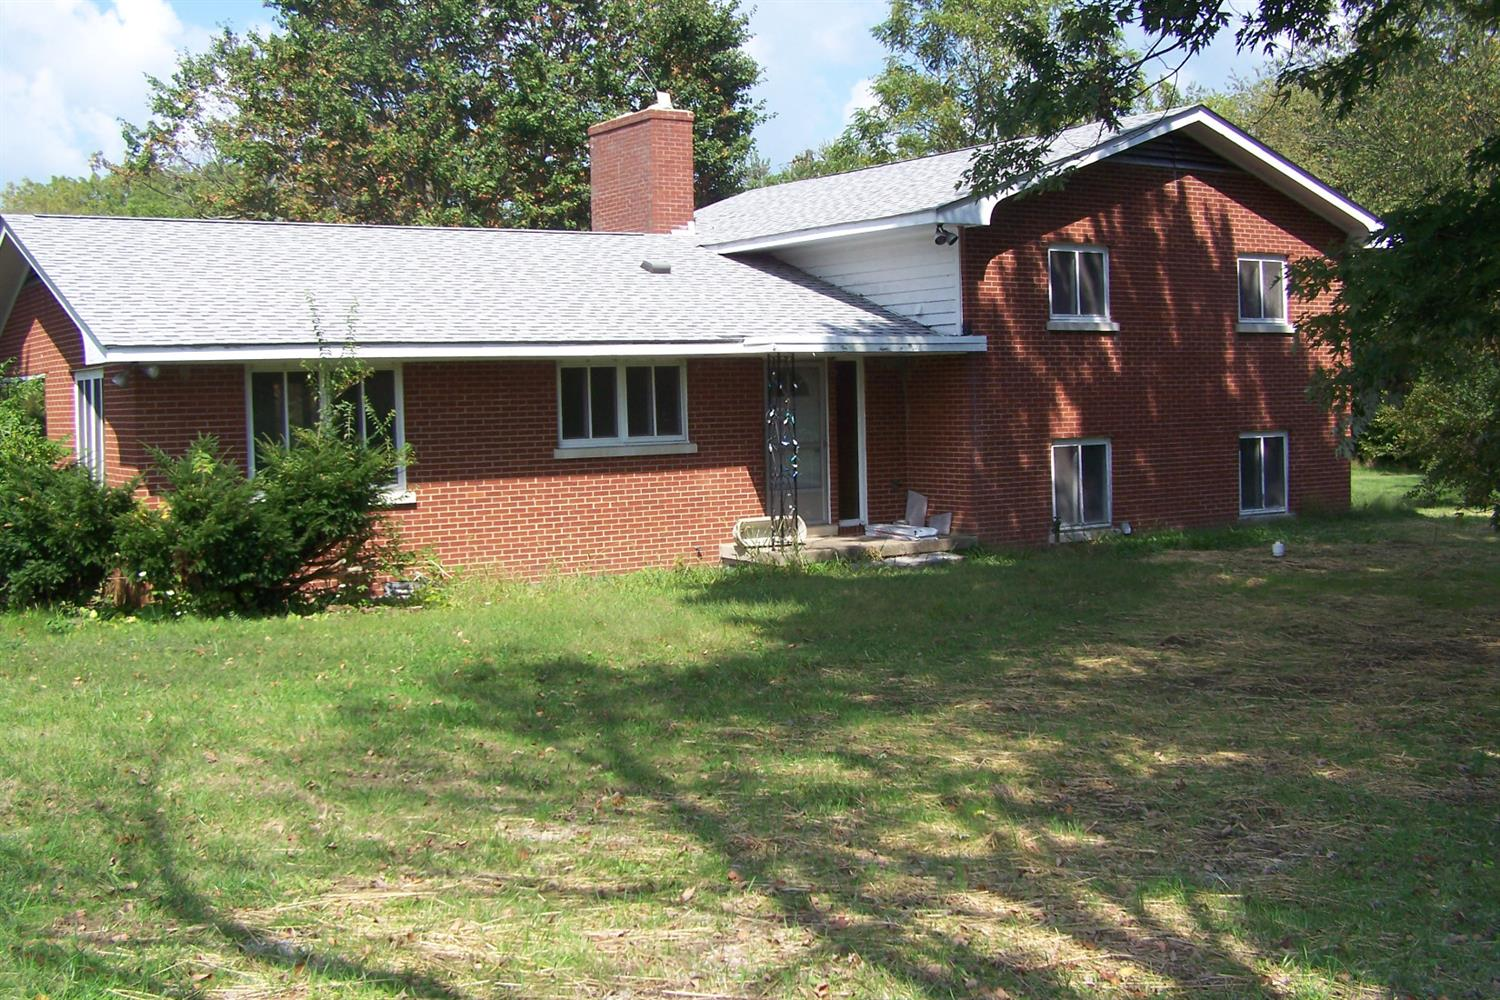 Home For Sale at 2495 Bryan Station Rd, Lexington, KY 40516